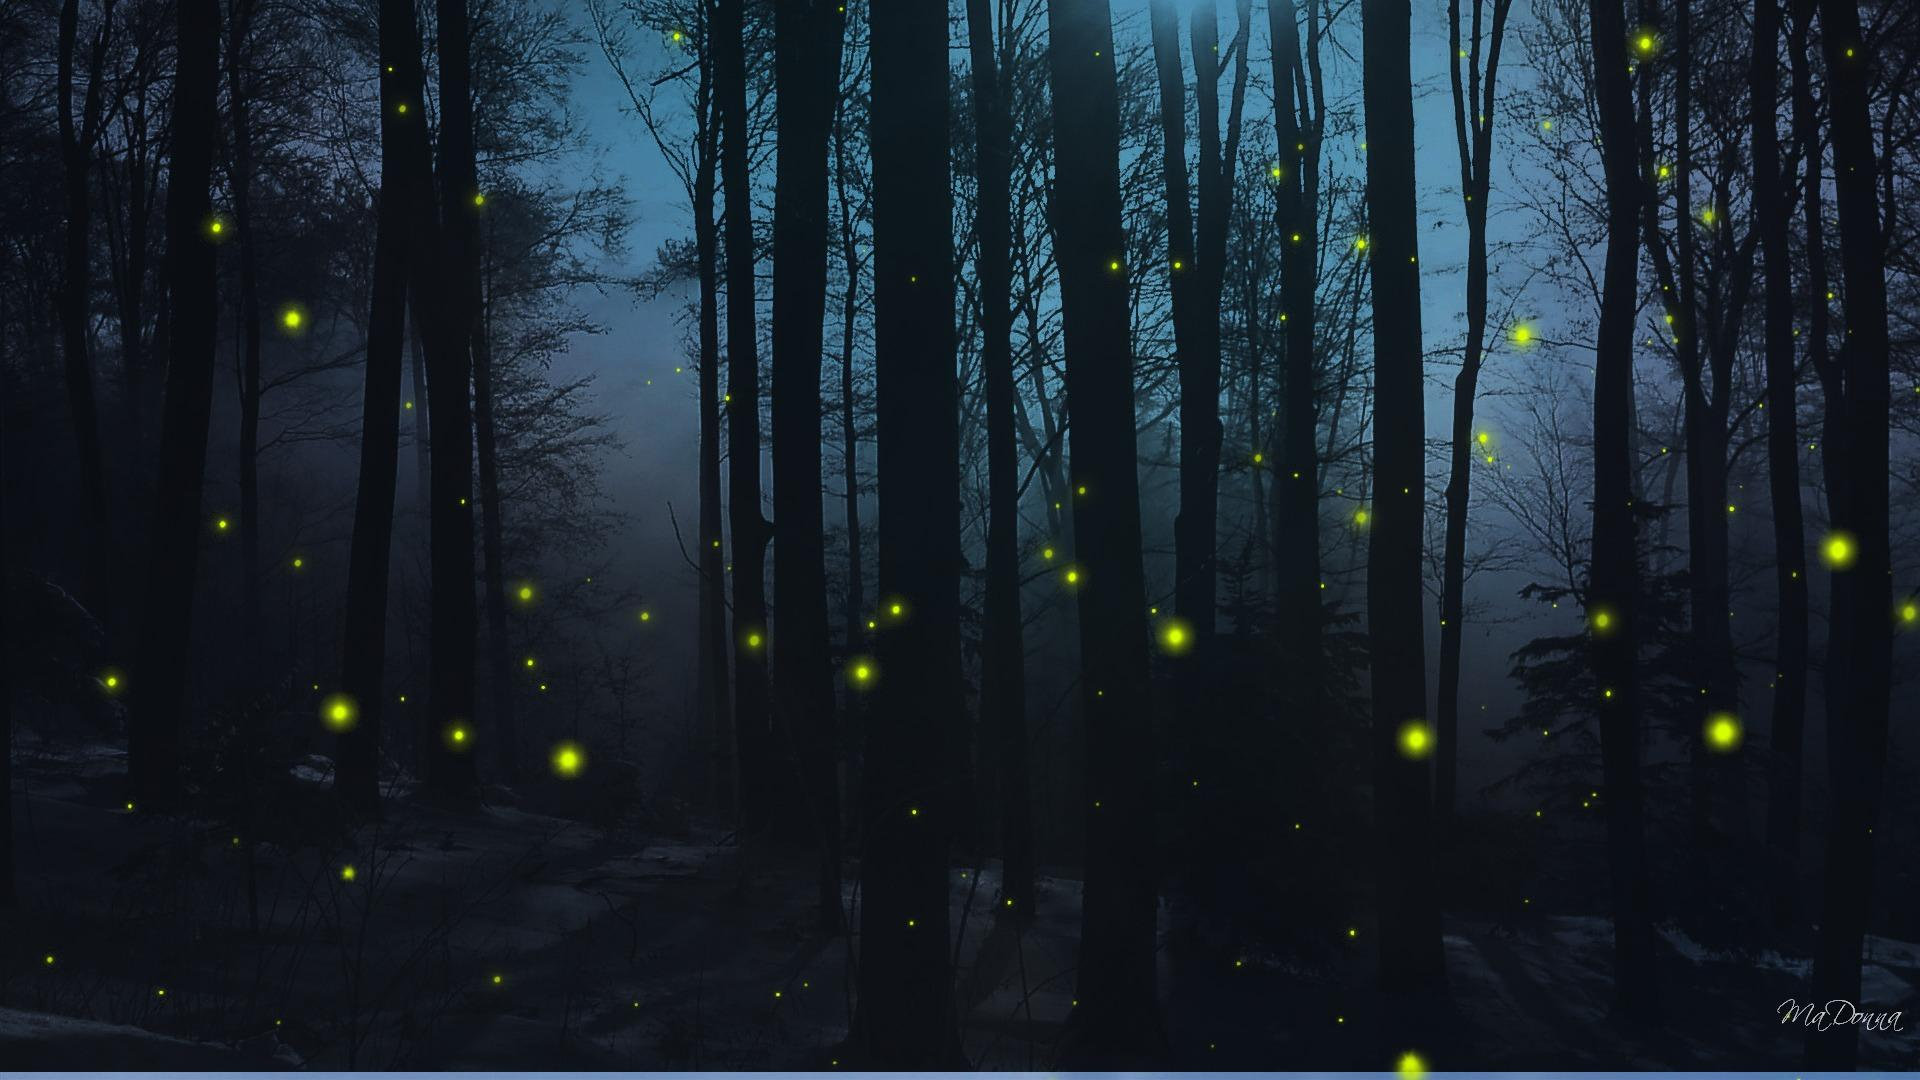 http://wallpapercave.com/fireflies-wallpaper